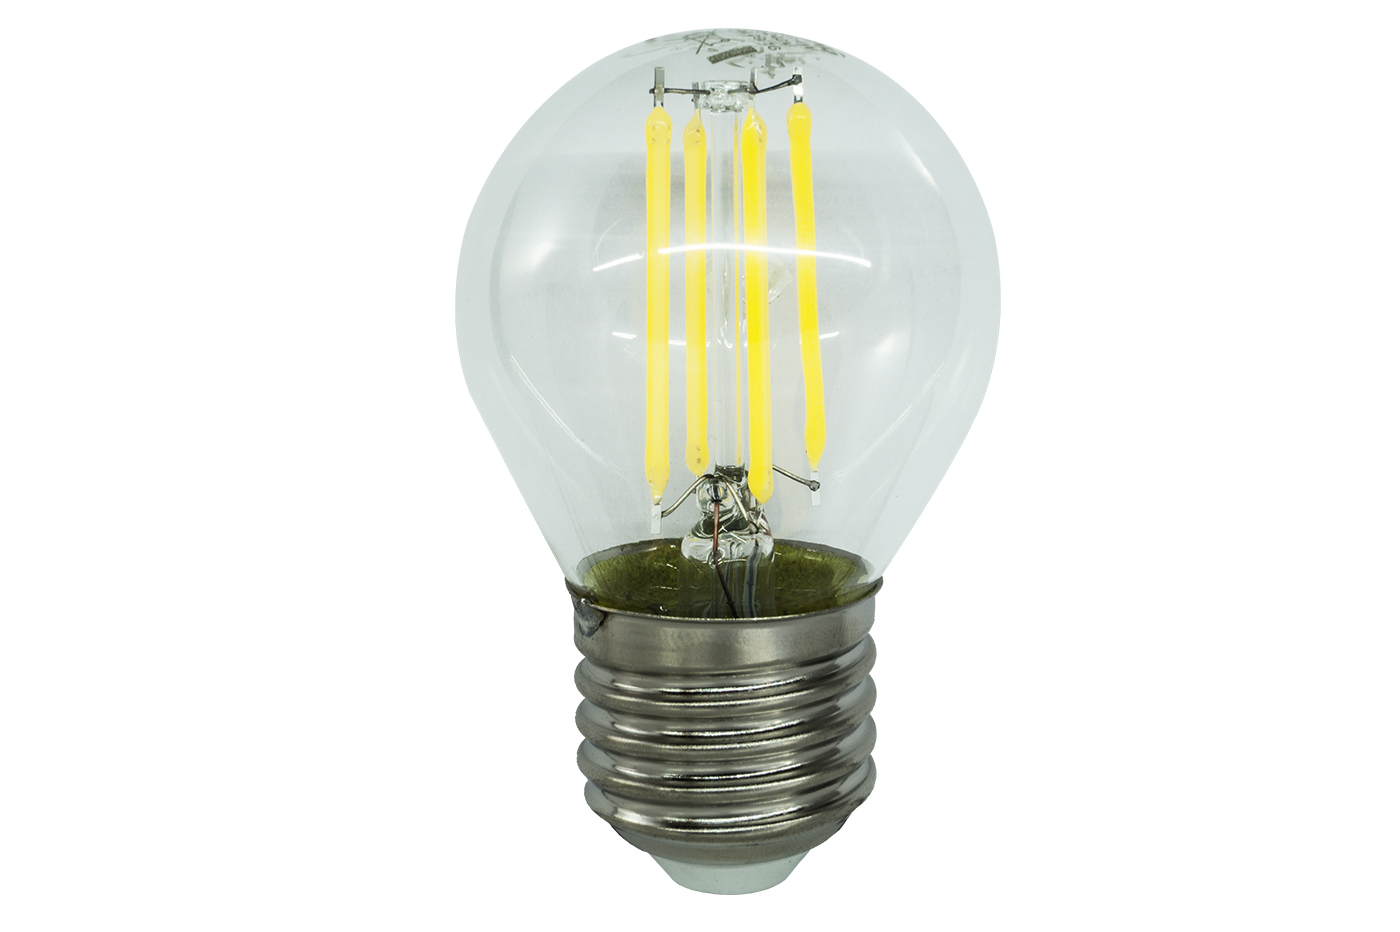 LAMP LED FILAMENTO 4W E27 MINI GLOBO G45 VETRO DIMMERABILE KODAK 41121-EU-4000